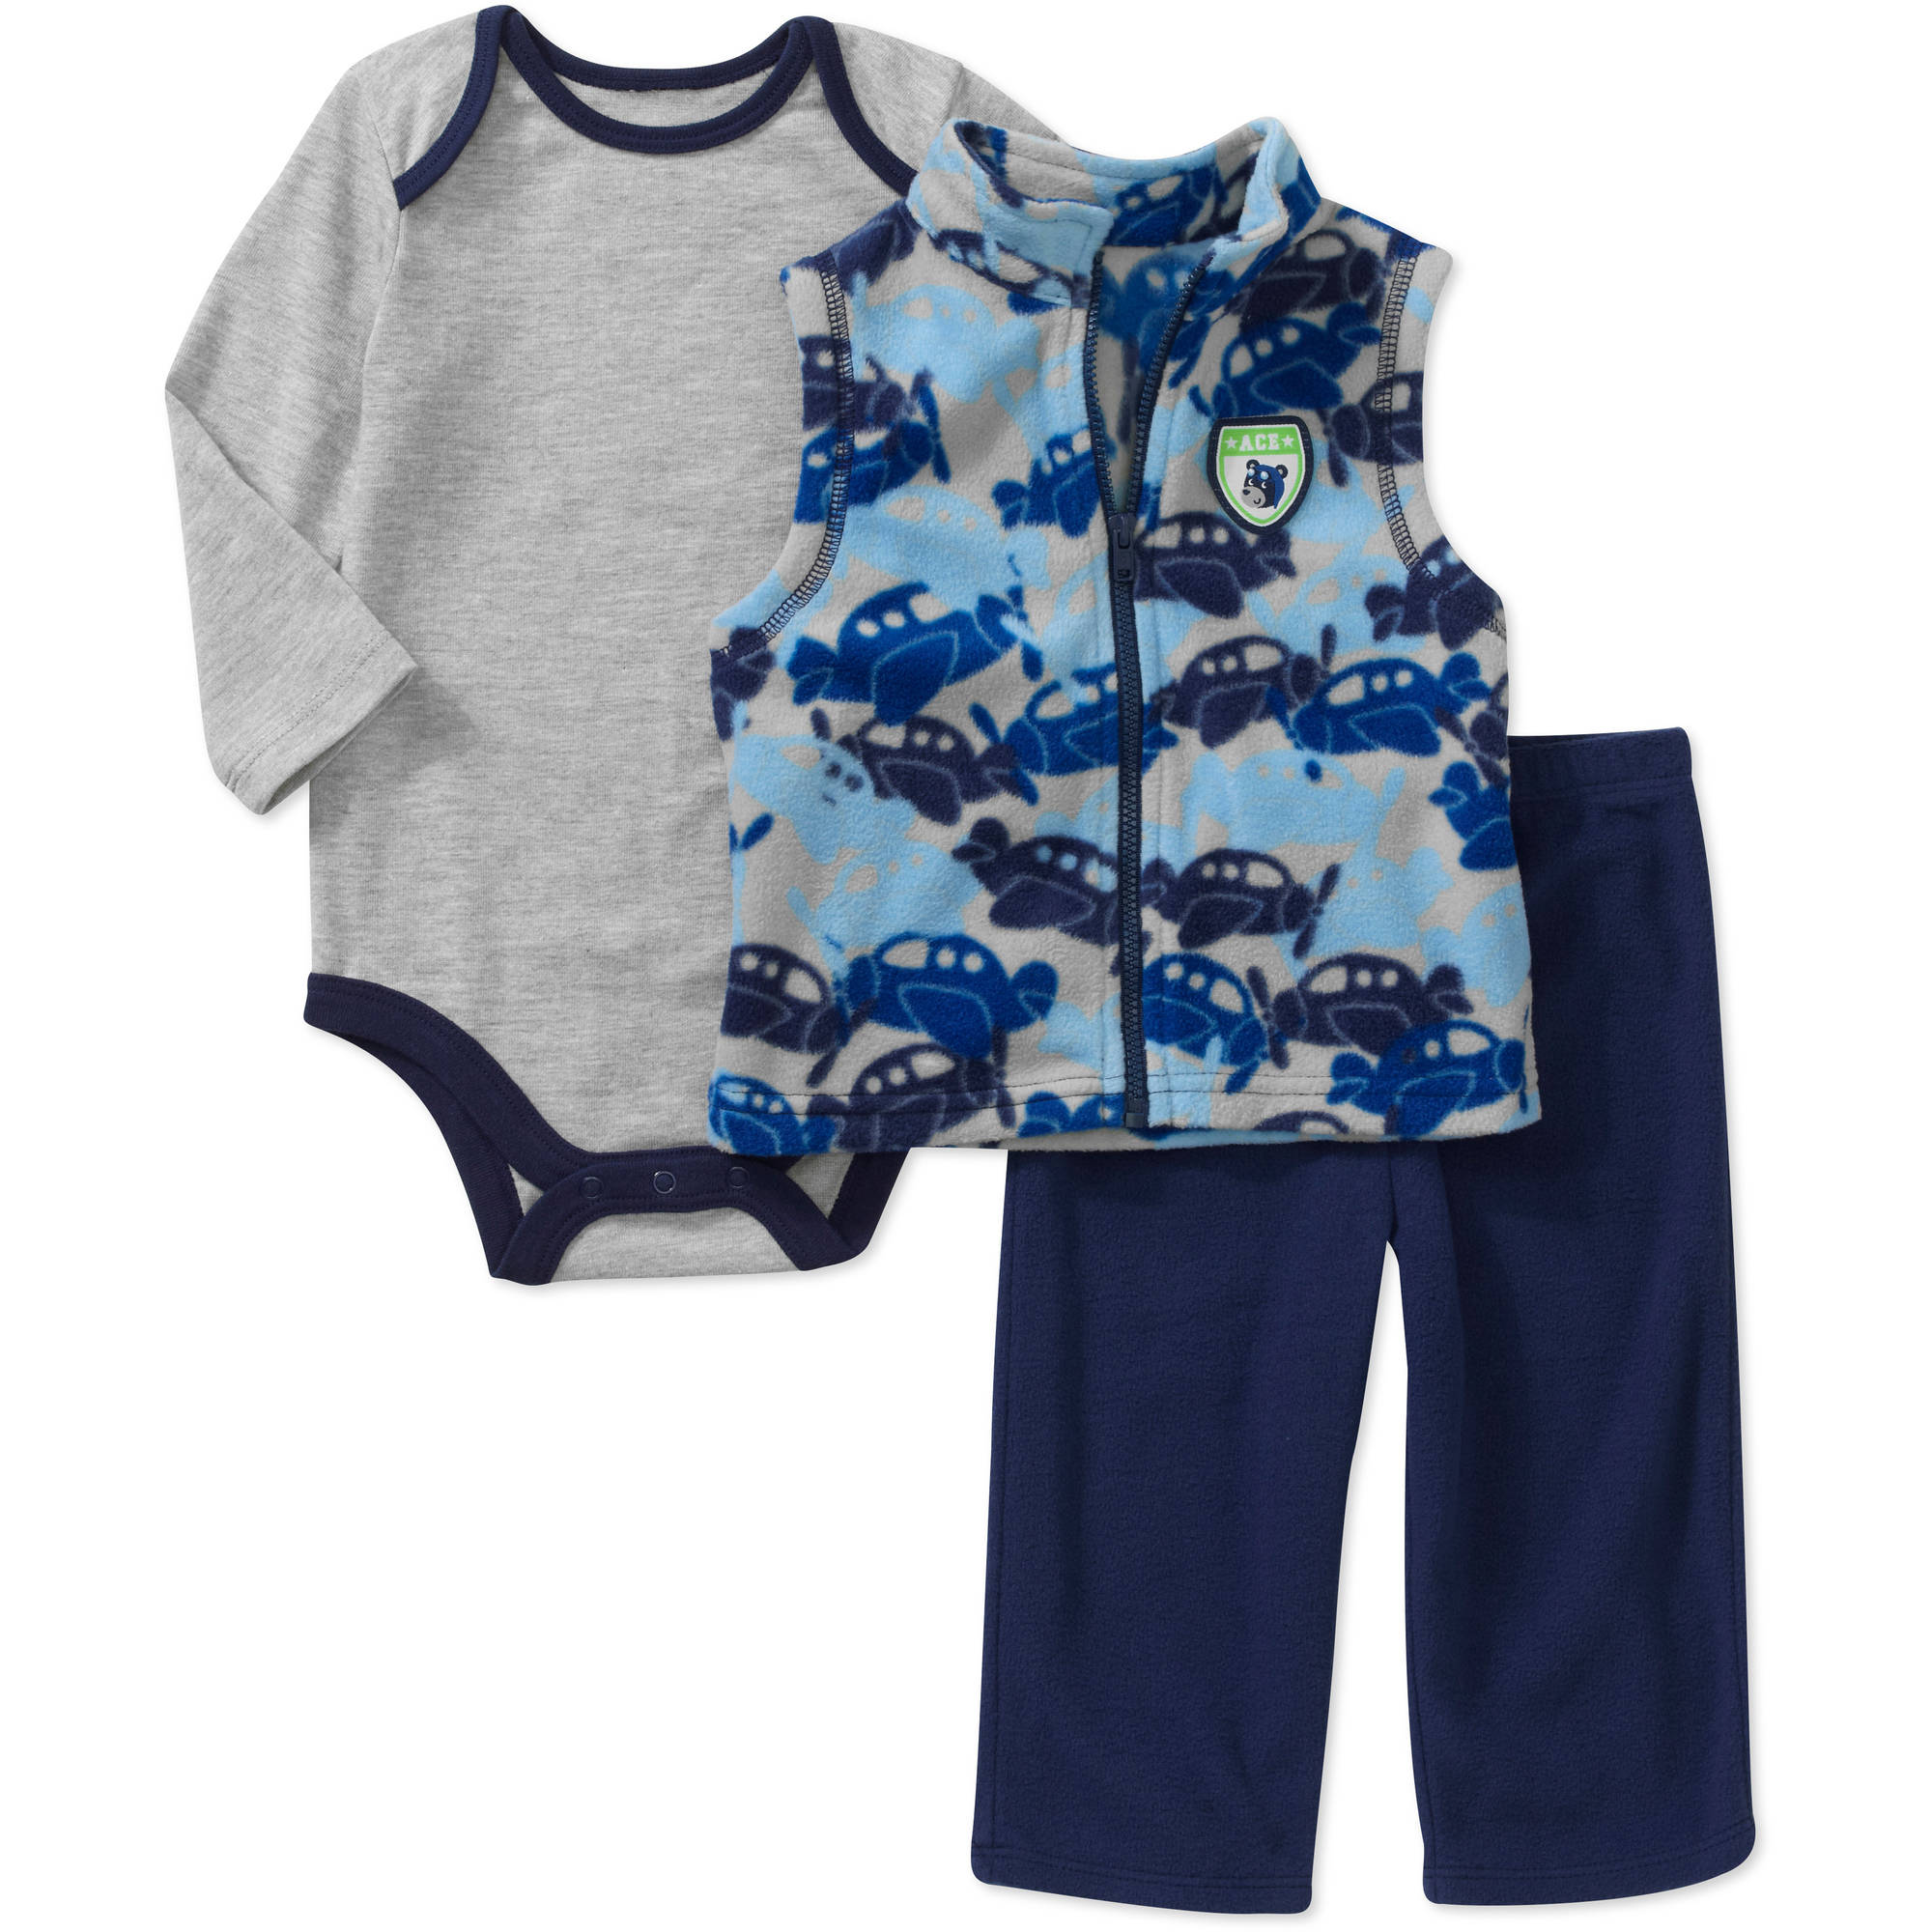 Faded Glory Newborn Boys' 3 Piece Fleece Vest, Creeper and Pant Set